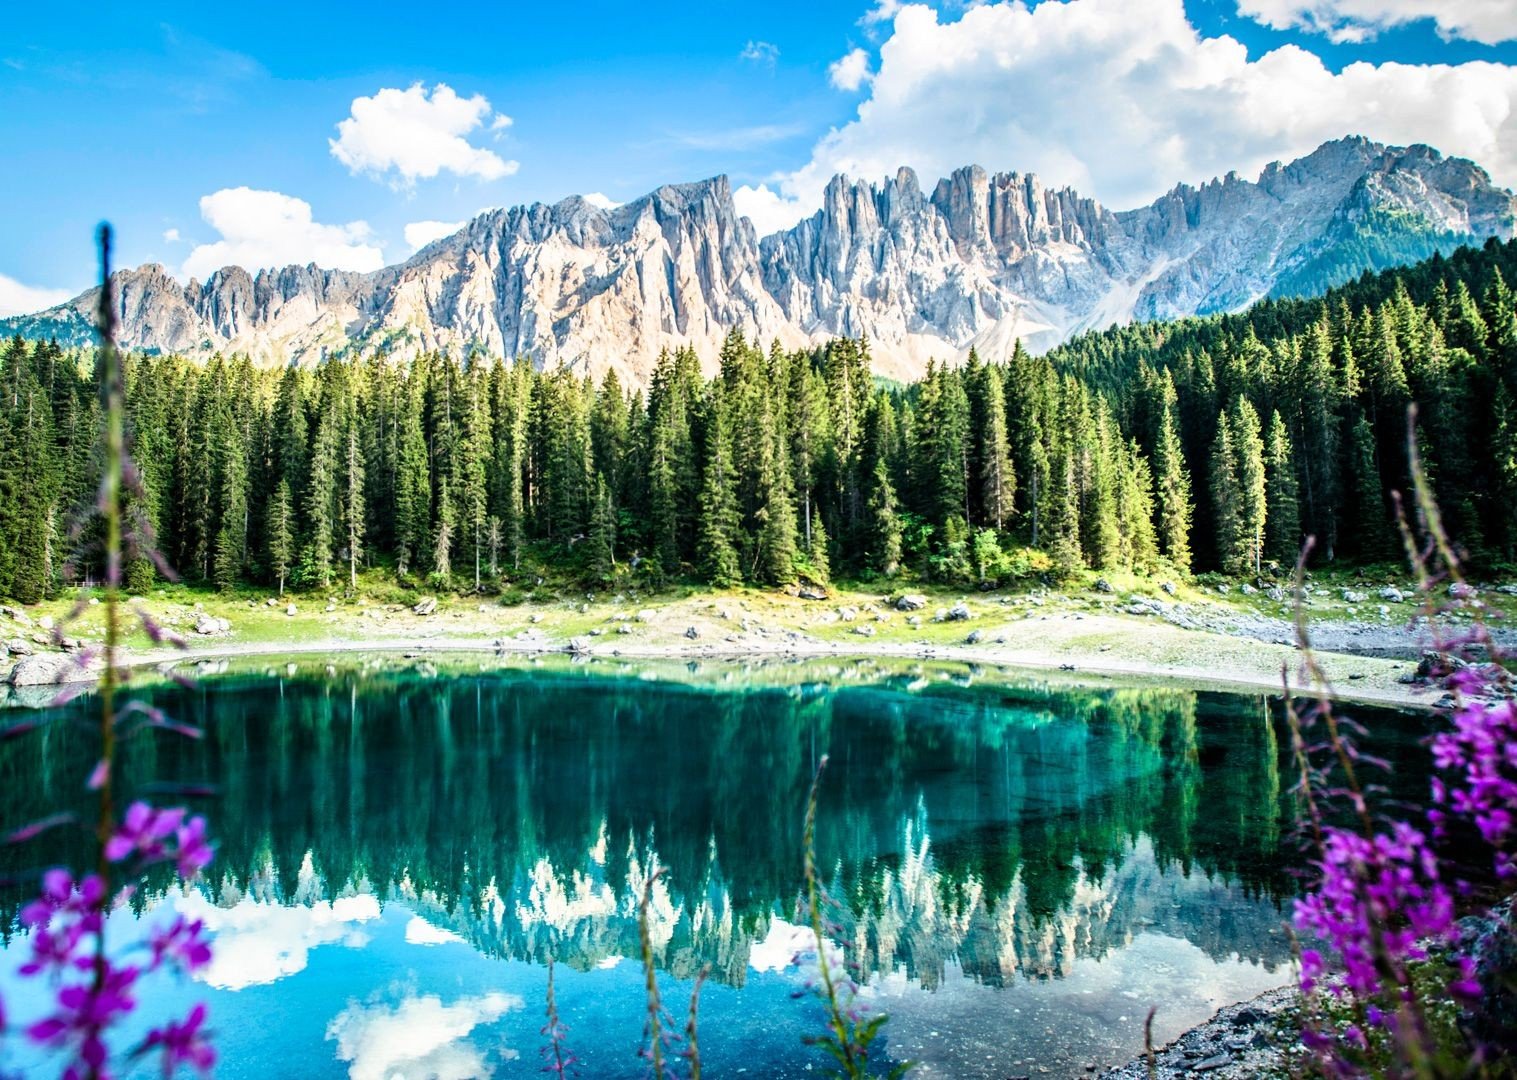 forests-lakes-and-mountains-of-italy-on-road-cycling-holiday.jpg - Italy - Italian Dolomites - Guided Road Cycling Holiday - Road Cycling